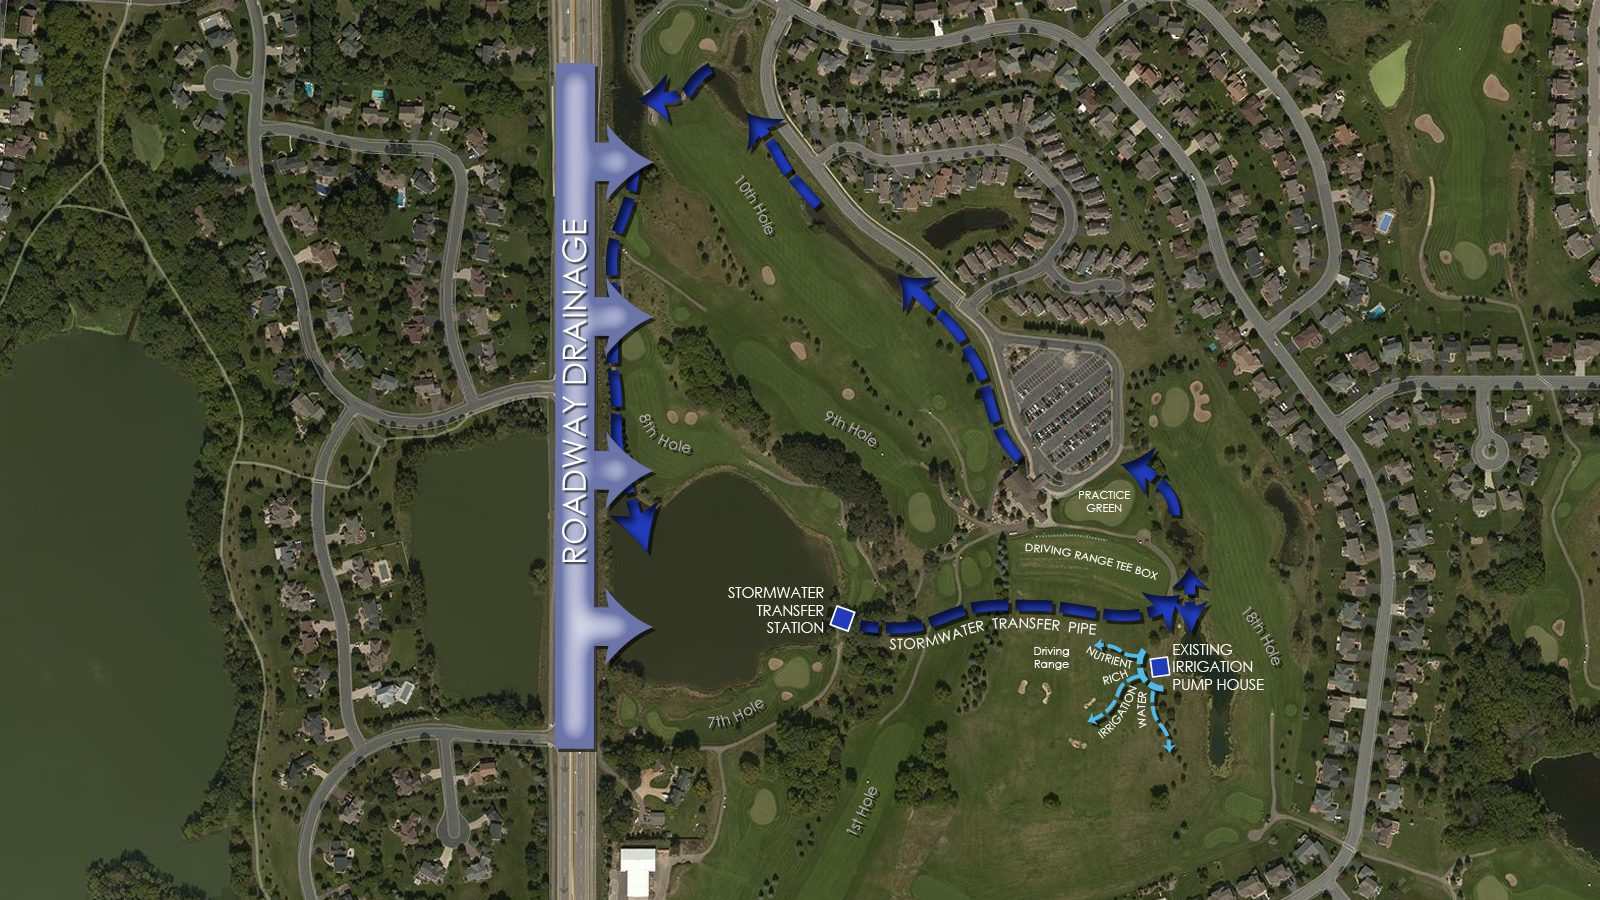 Eagle Valley golf course stormwater plan